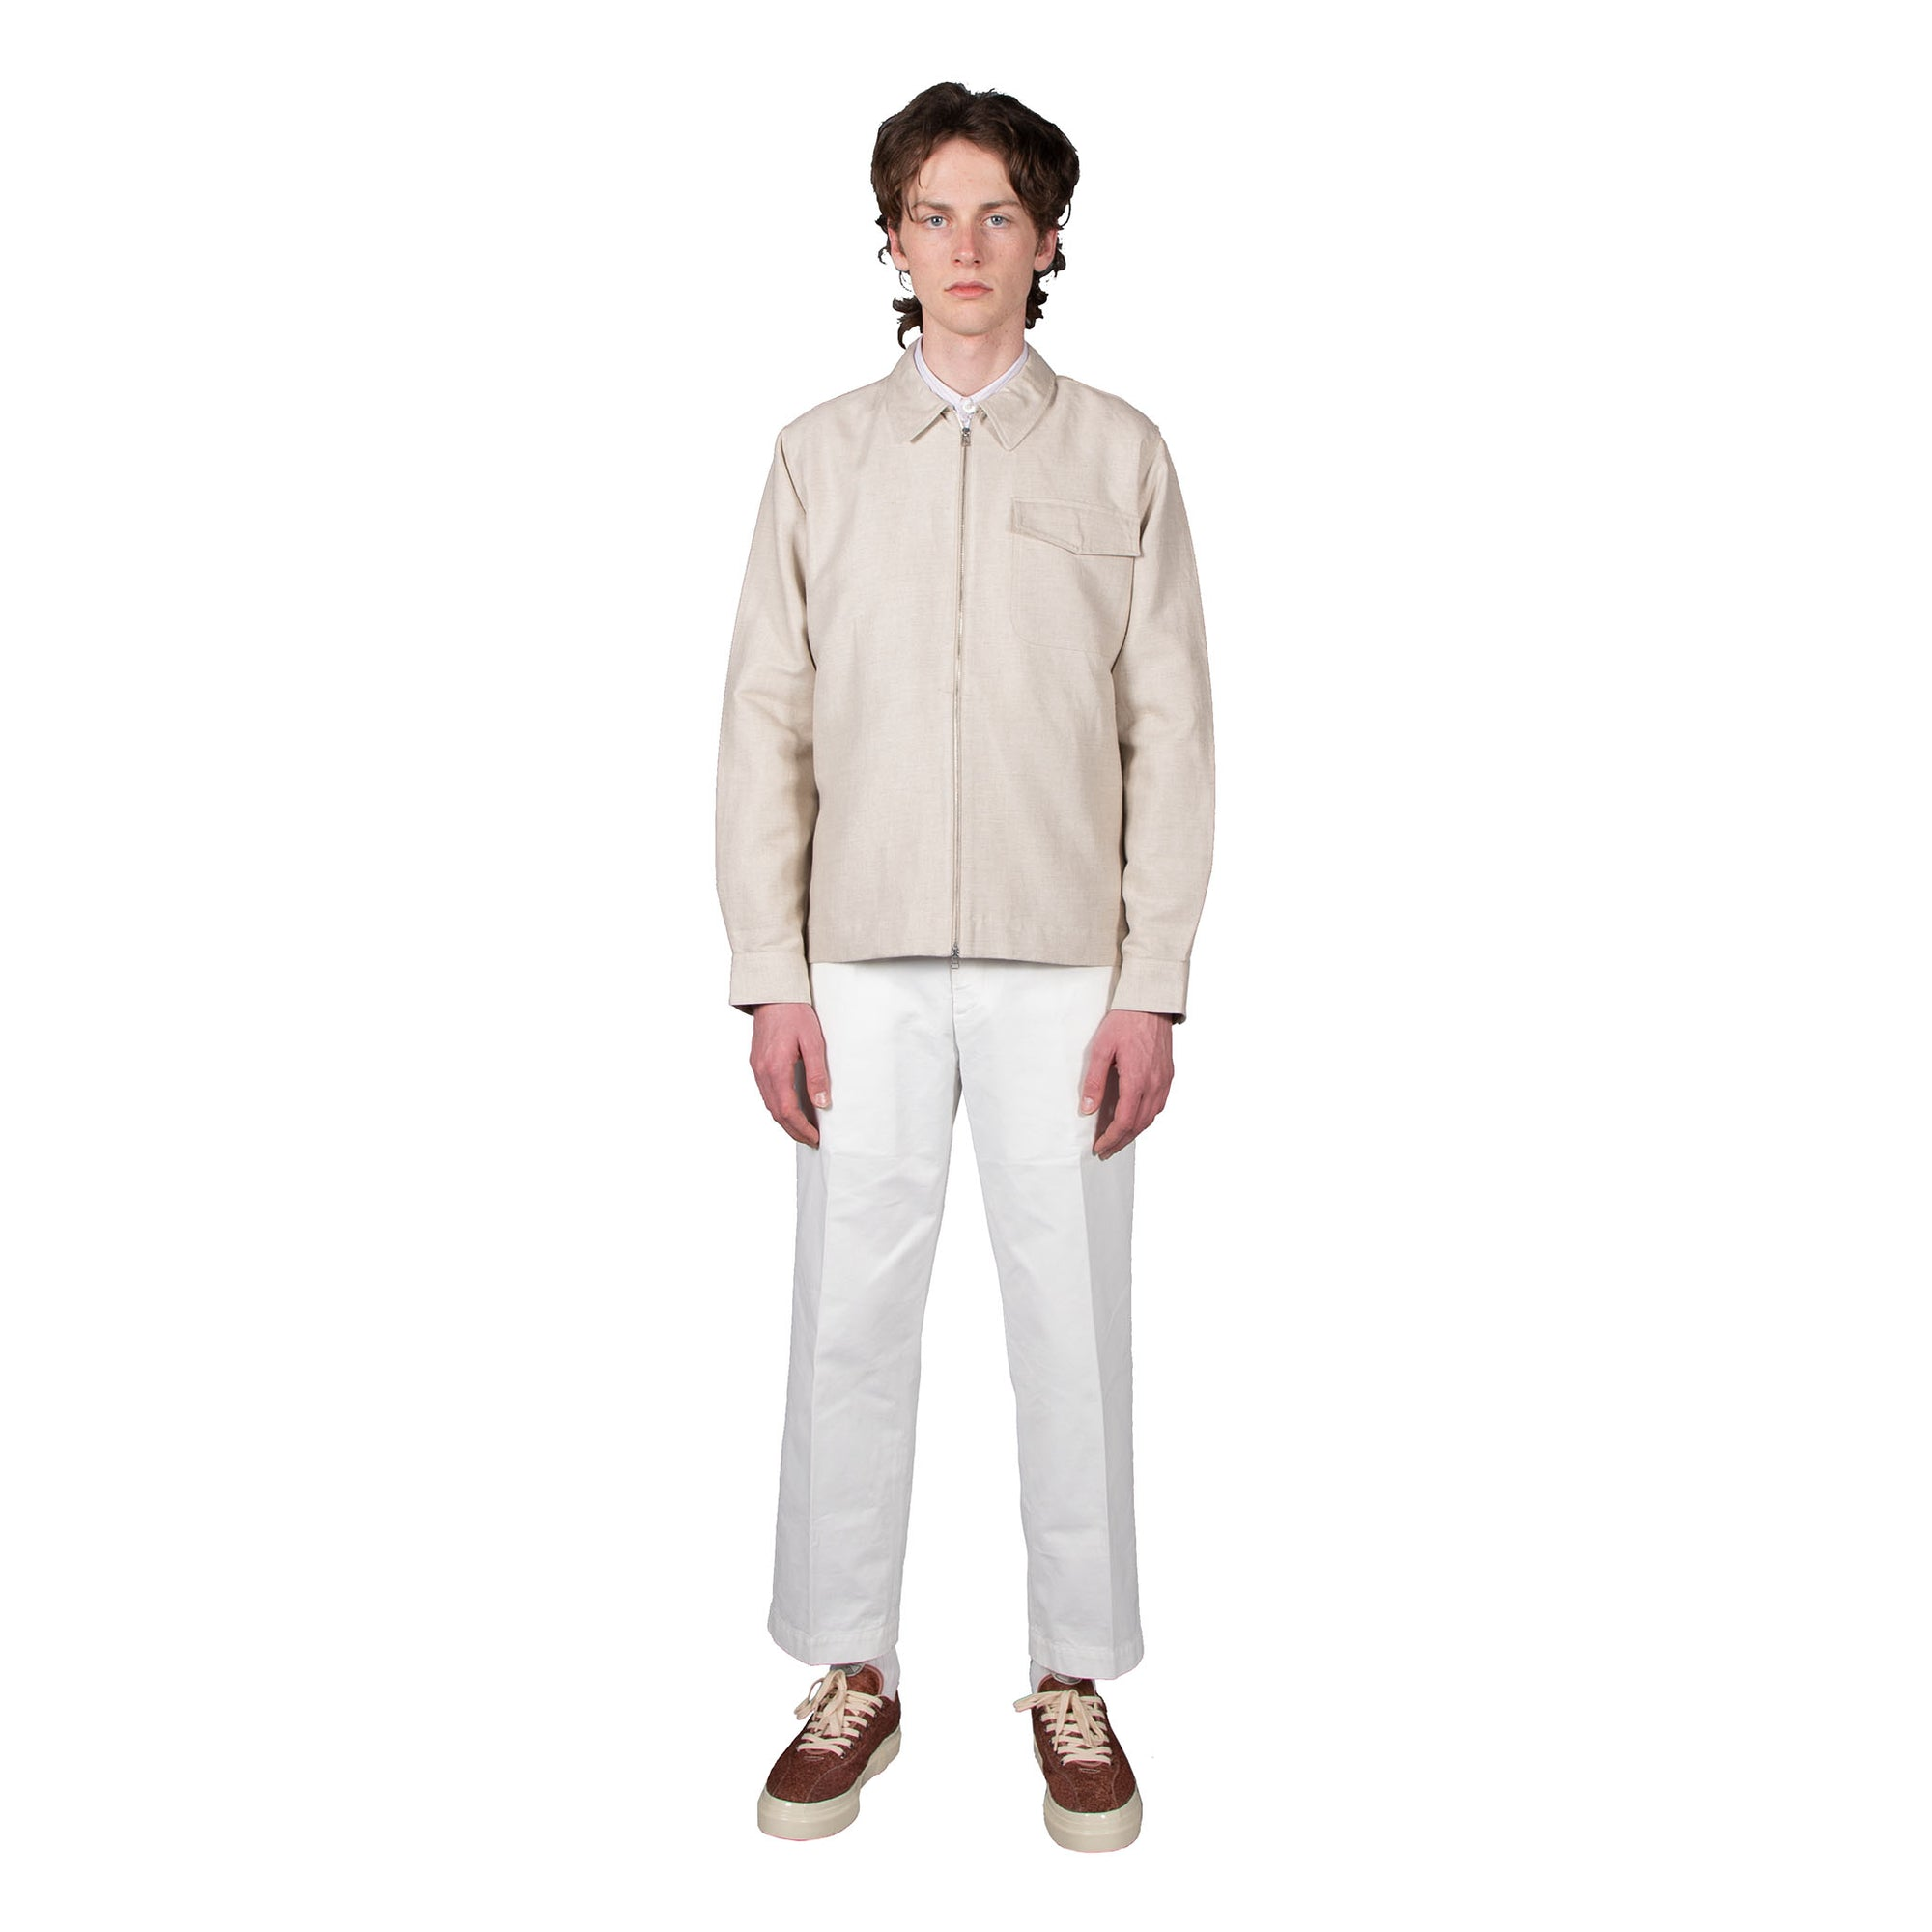 Shop Schnayderman's shirt jacket online zipshirt cotton linen twill sand